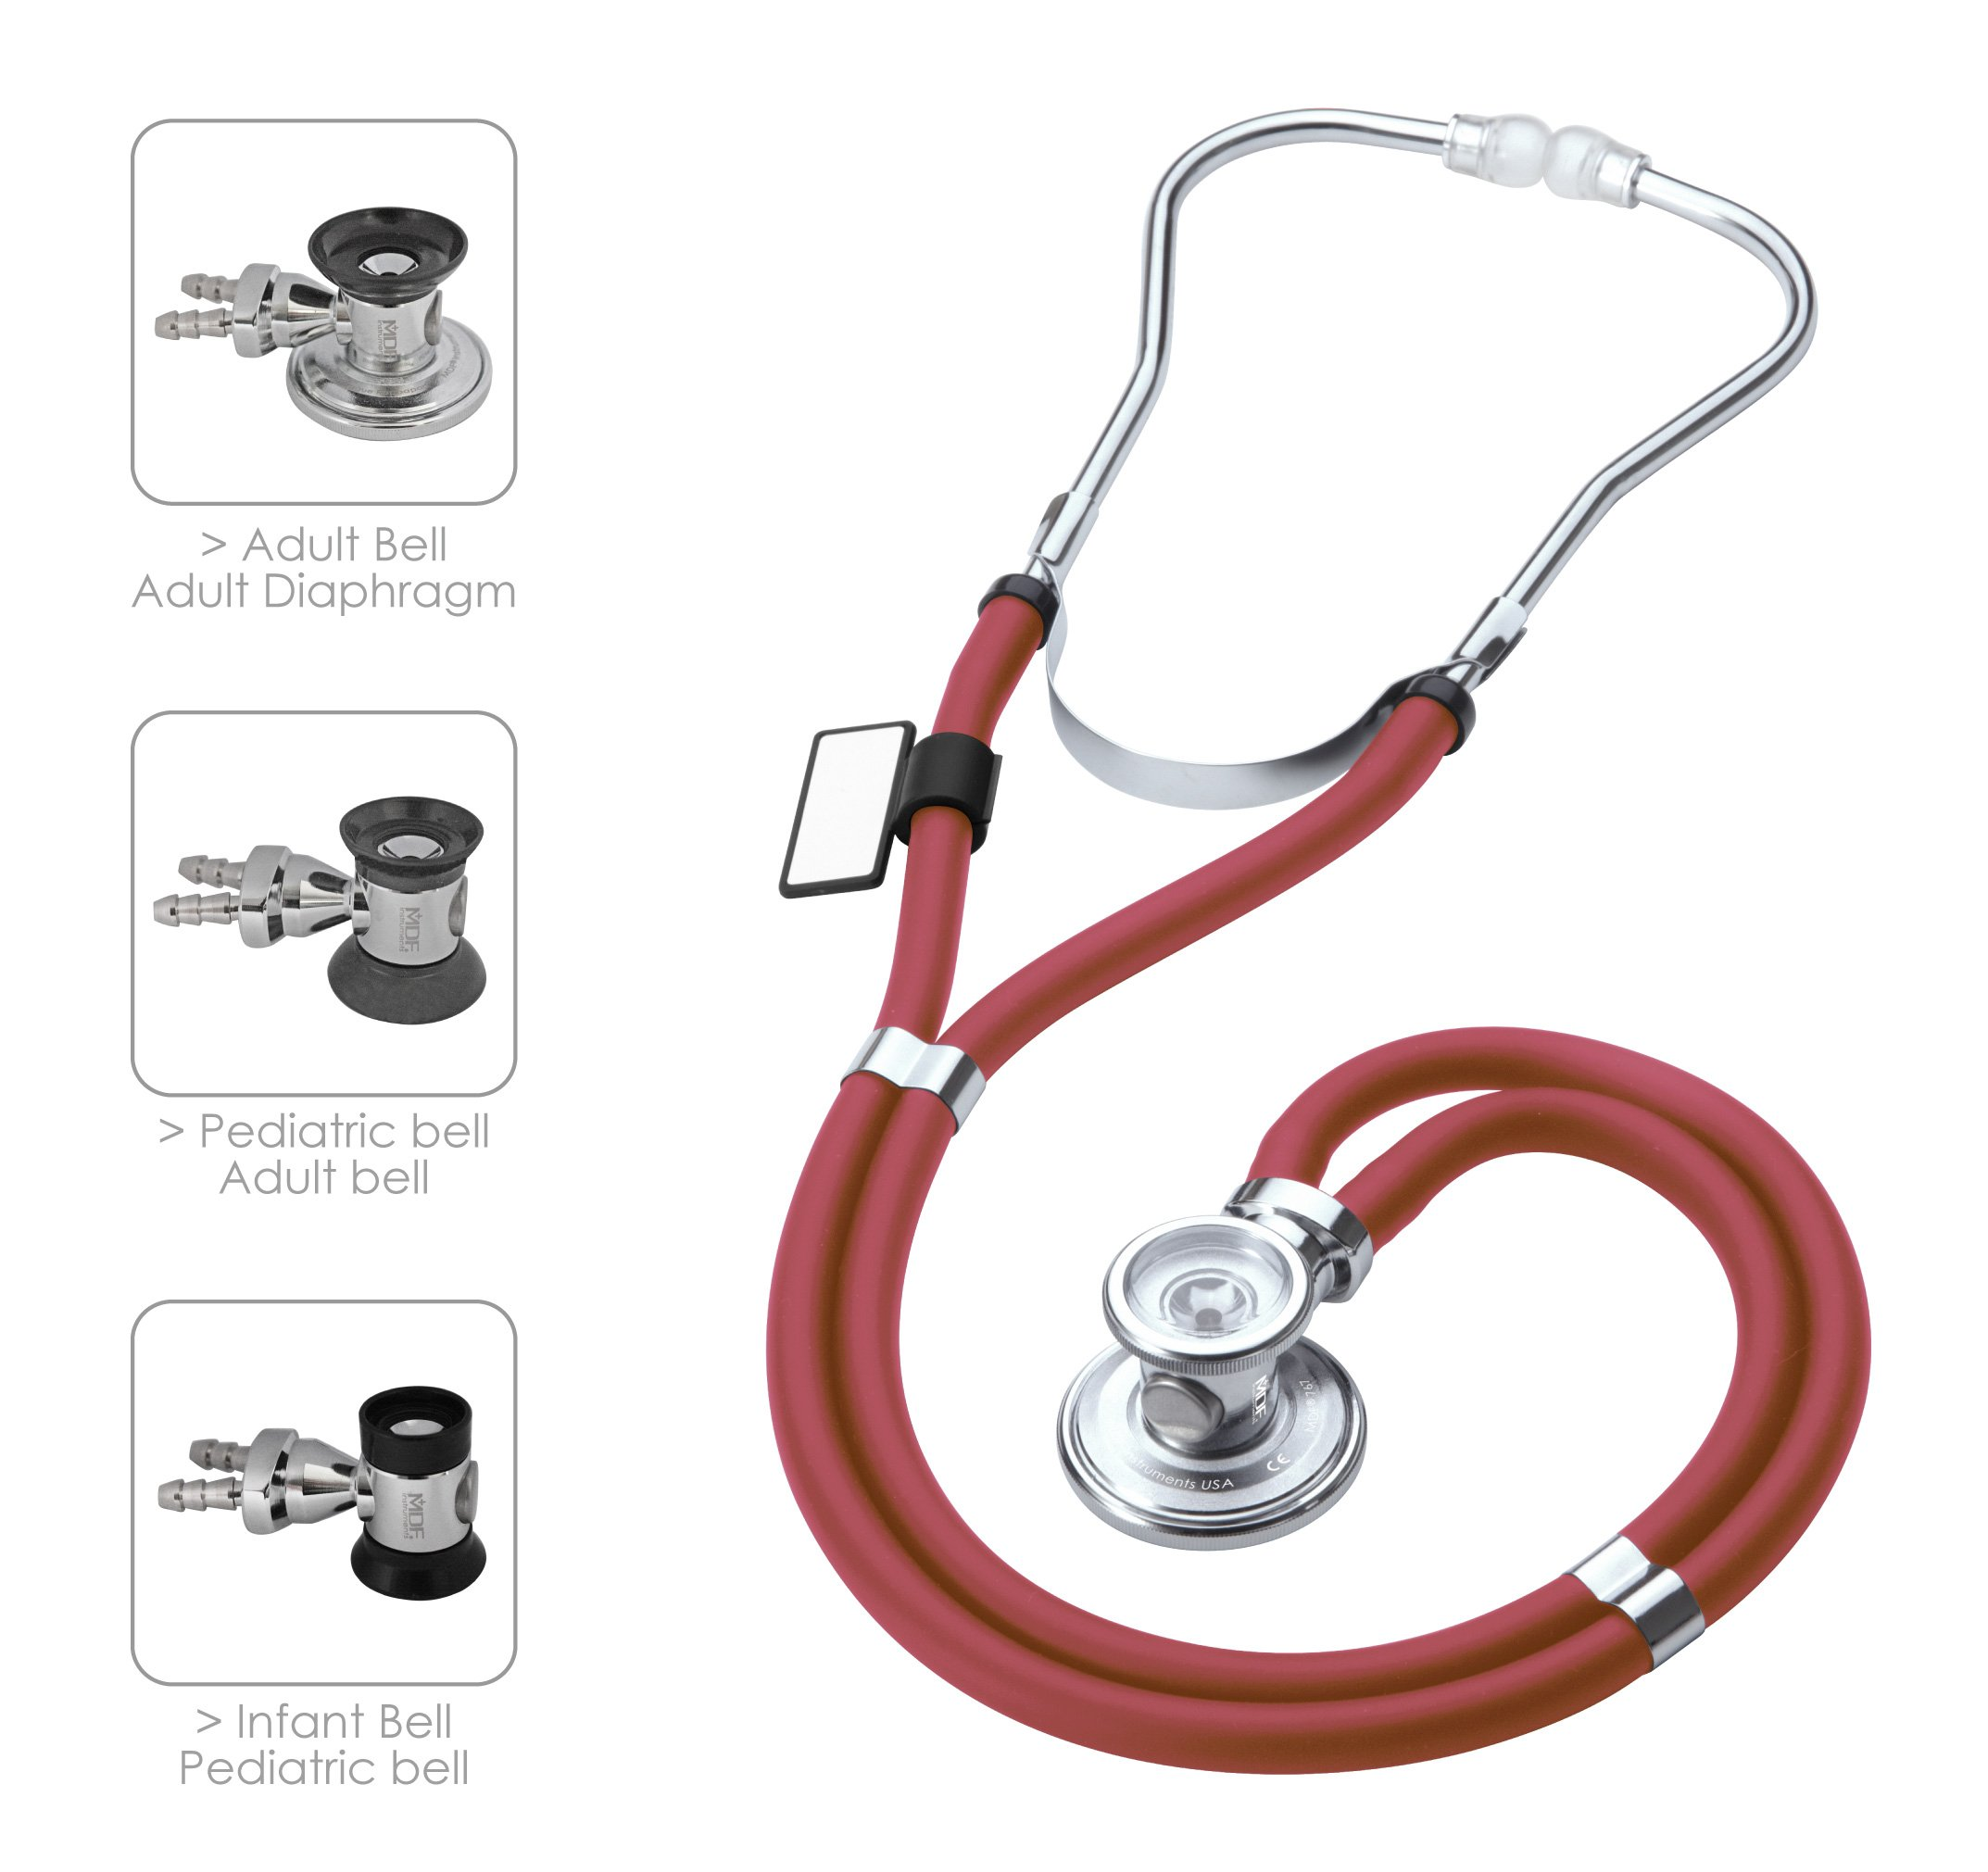 MDF Sprague Rappaport Dual Head Stethoscope with Adult, Pediatric, and Infant convertible chestpiece - Free-Parts-for-Life & (MDF767) (Burgundy (Napa))